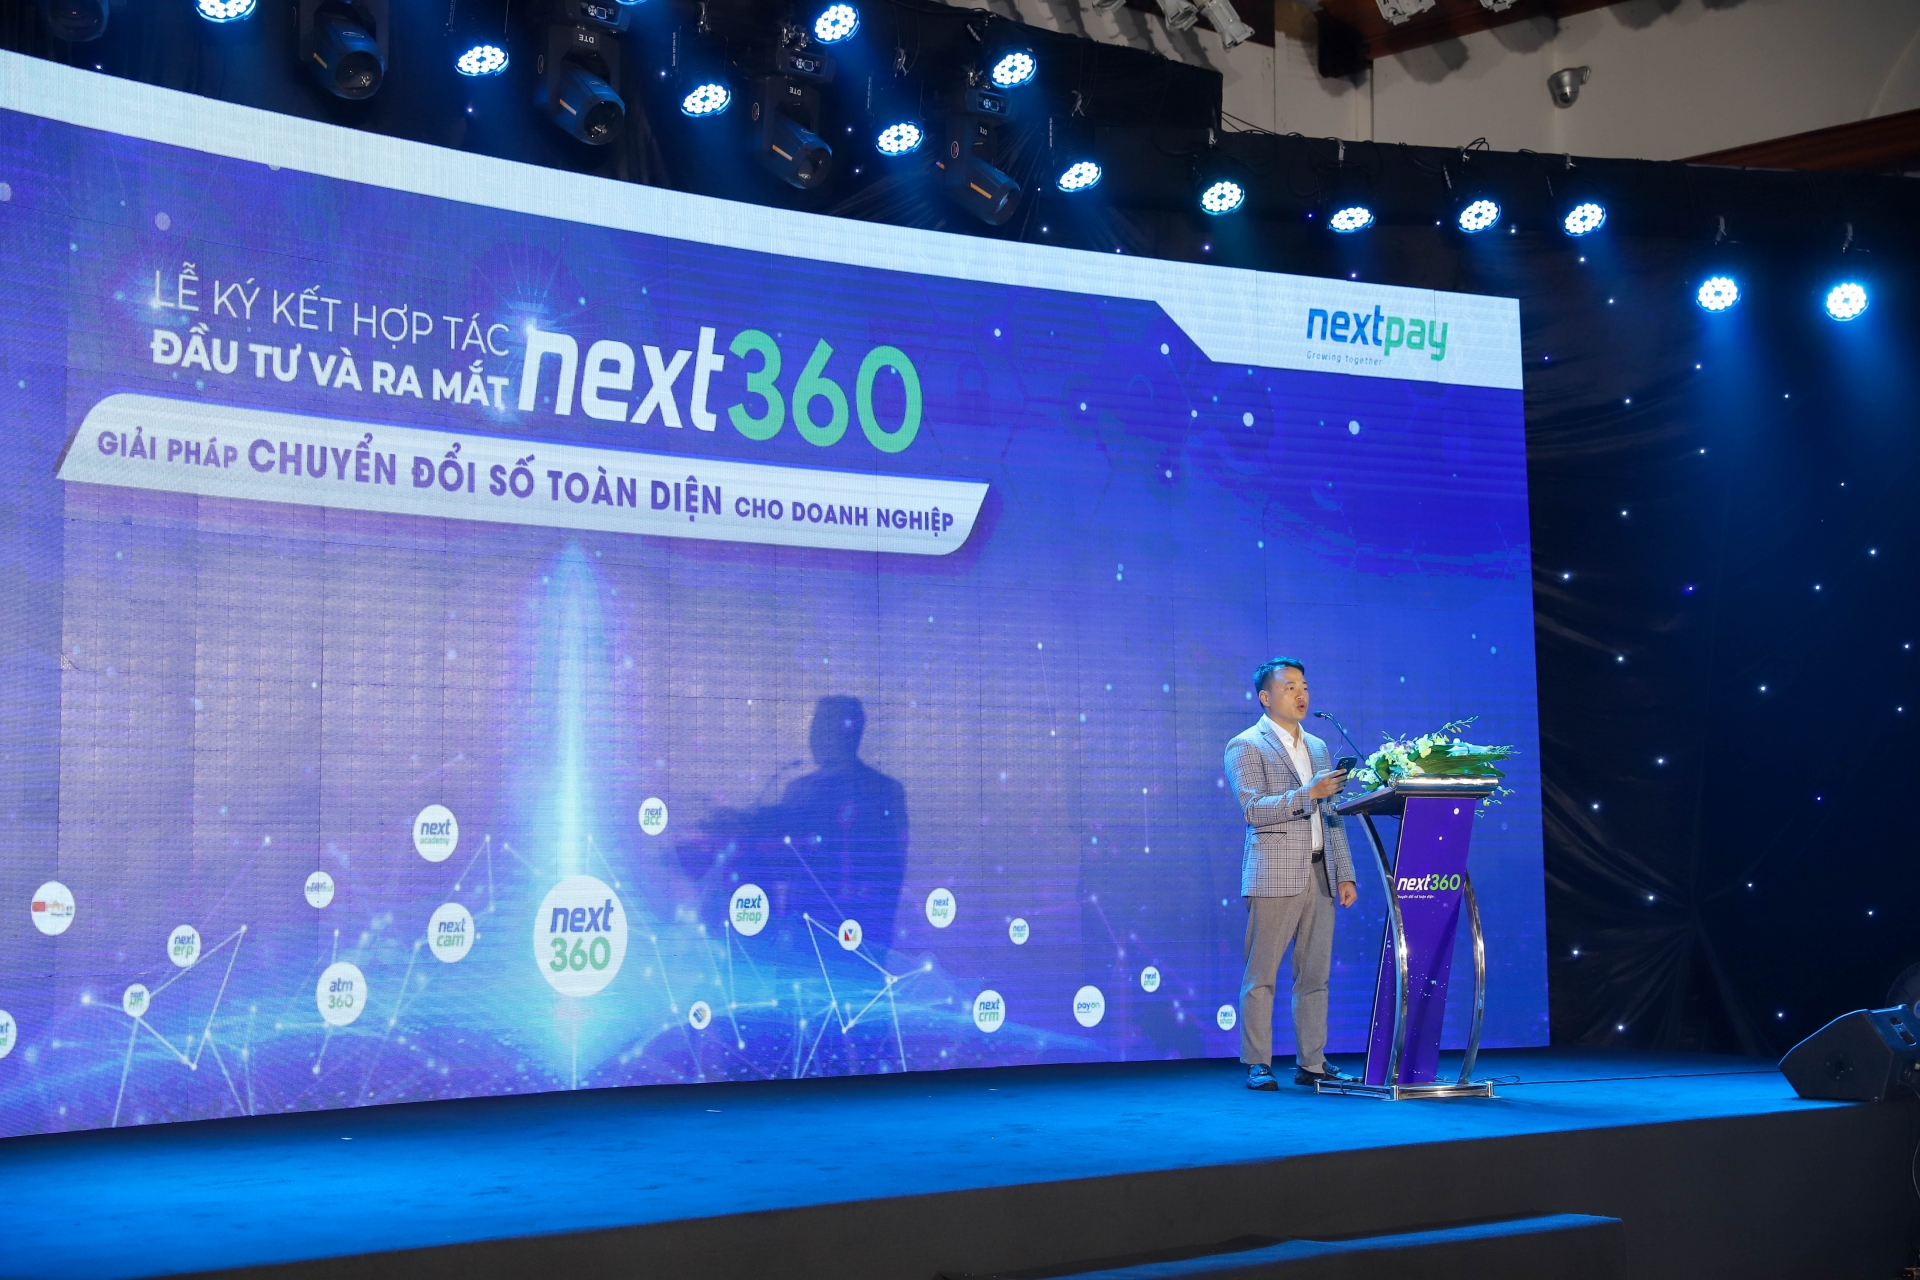 NextPay launches digital transformation ecosystem Next360.vn for MSMEs